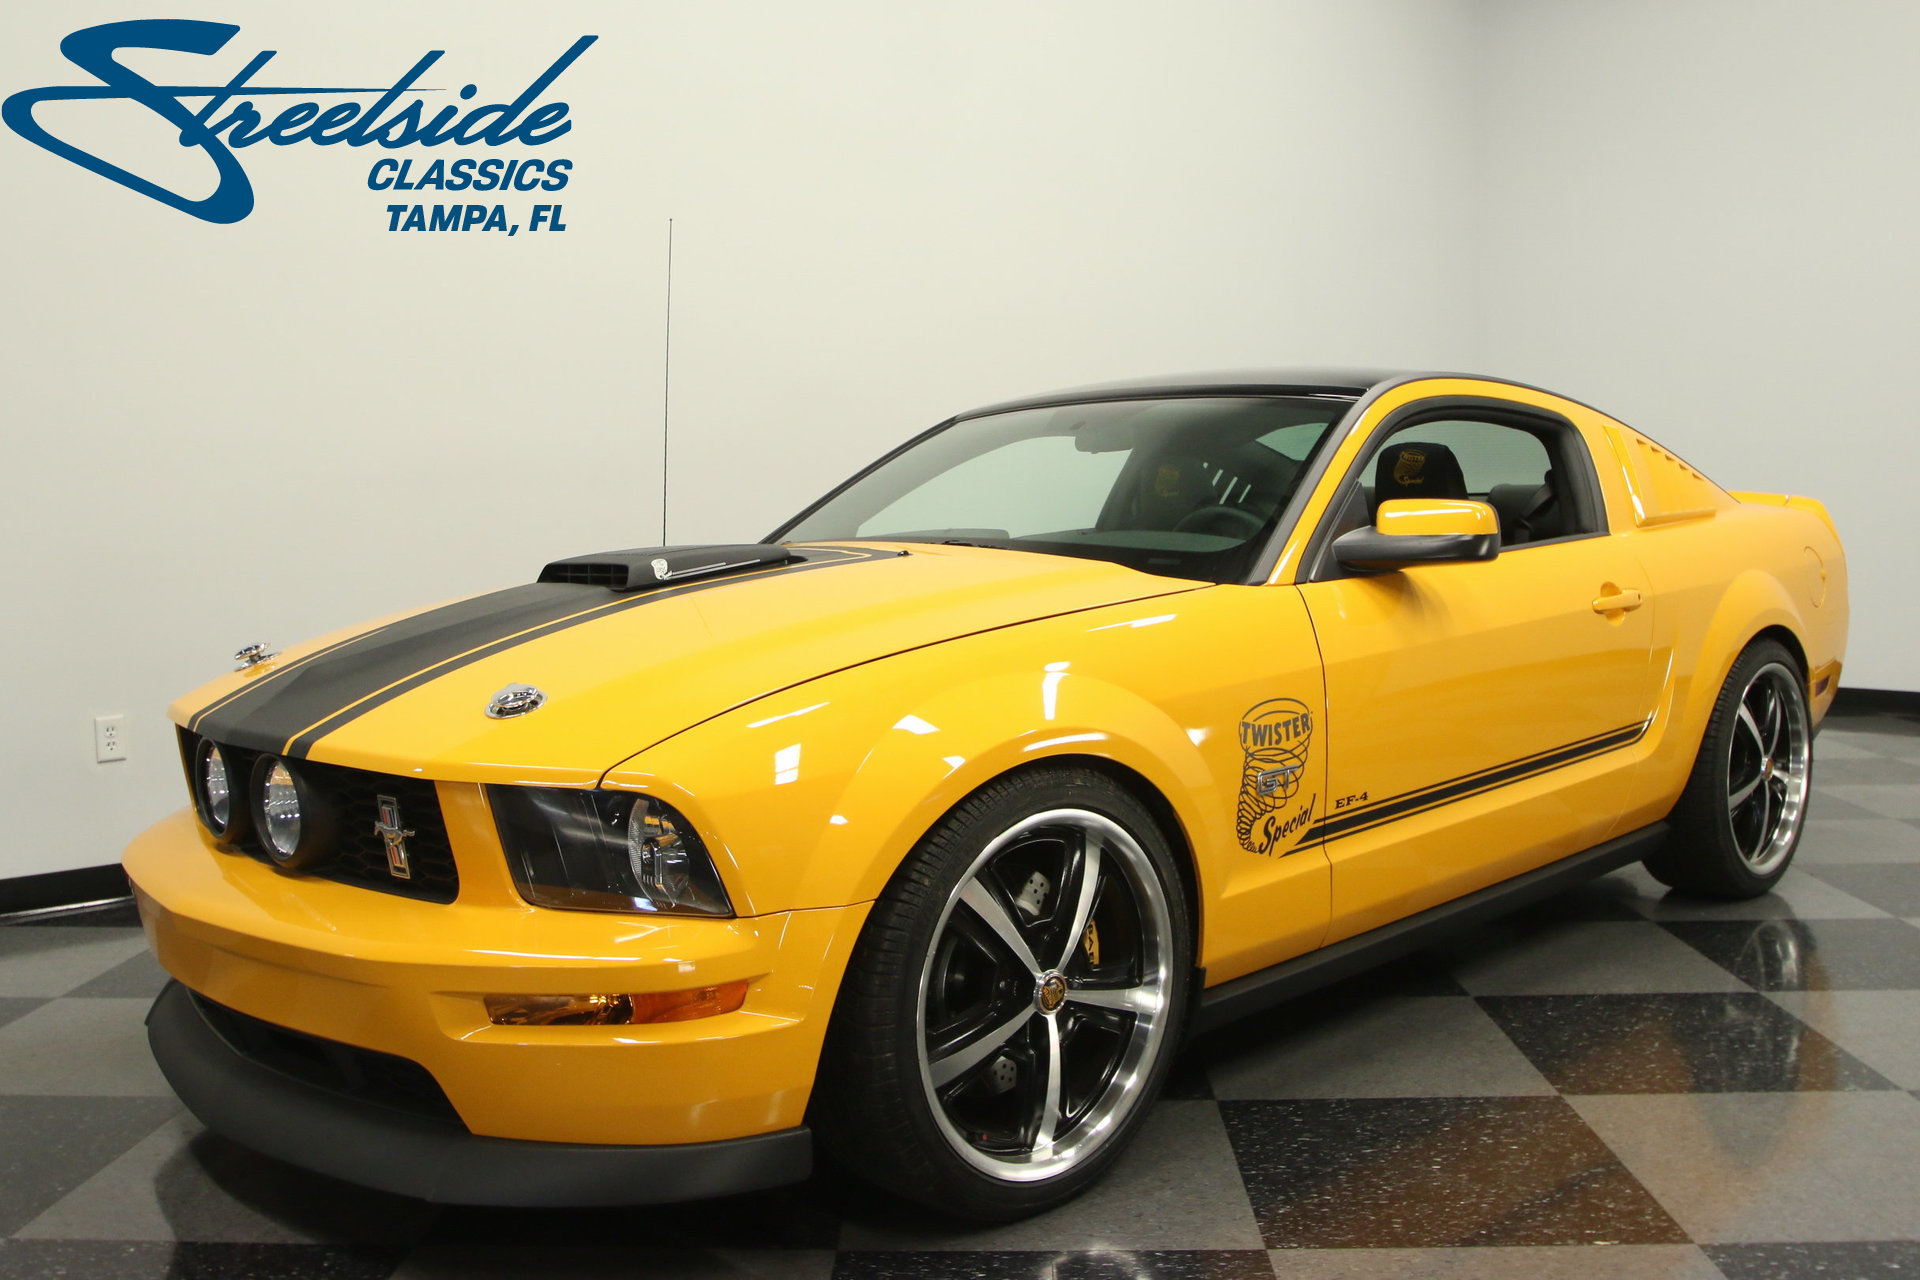 2008 ford mustang twister special ef4 for sale 75419 mcg. Black Bedroom Furniture Sets. Home Design Ideas